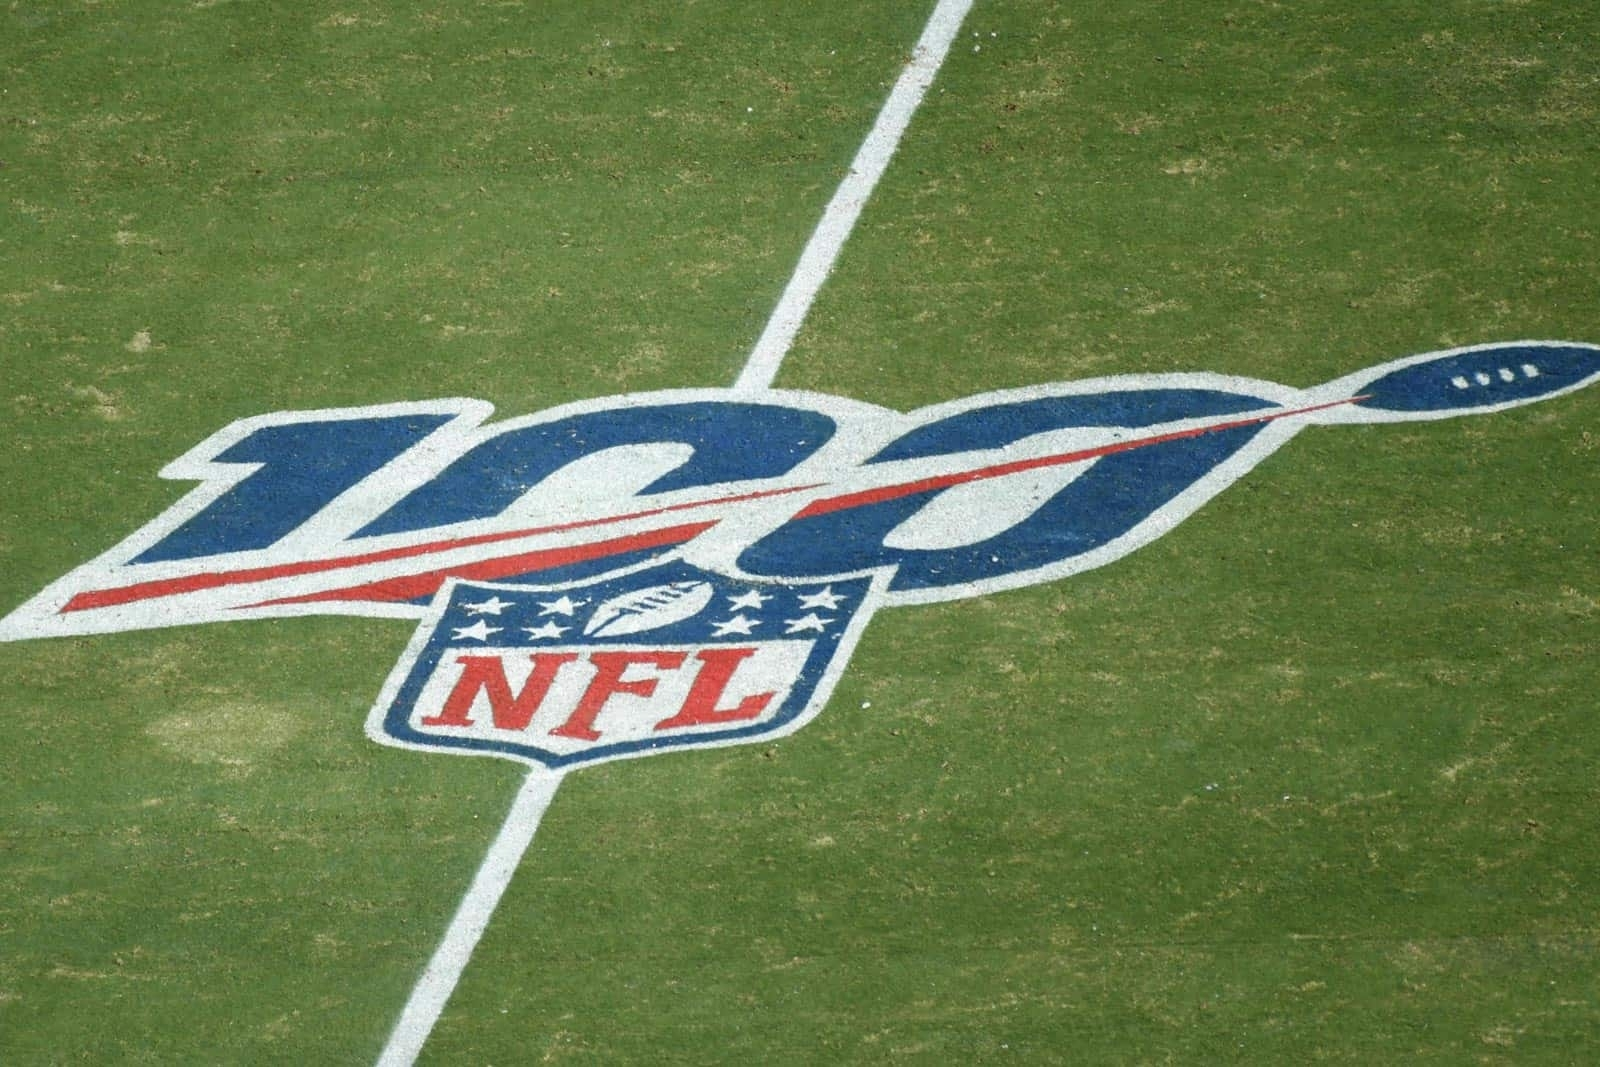 Nfl Playoff Schedule 2020: Dates, Time, And Tv For Afc, Nfc for Jan 2020 Calendar For Stephen F Austin